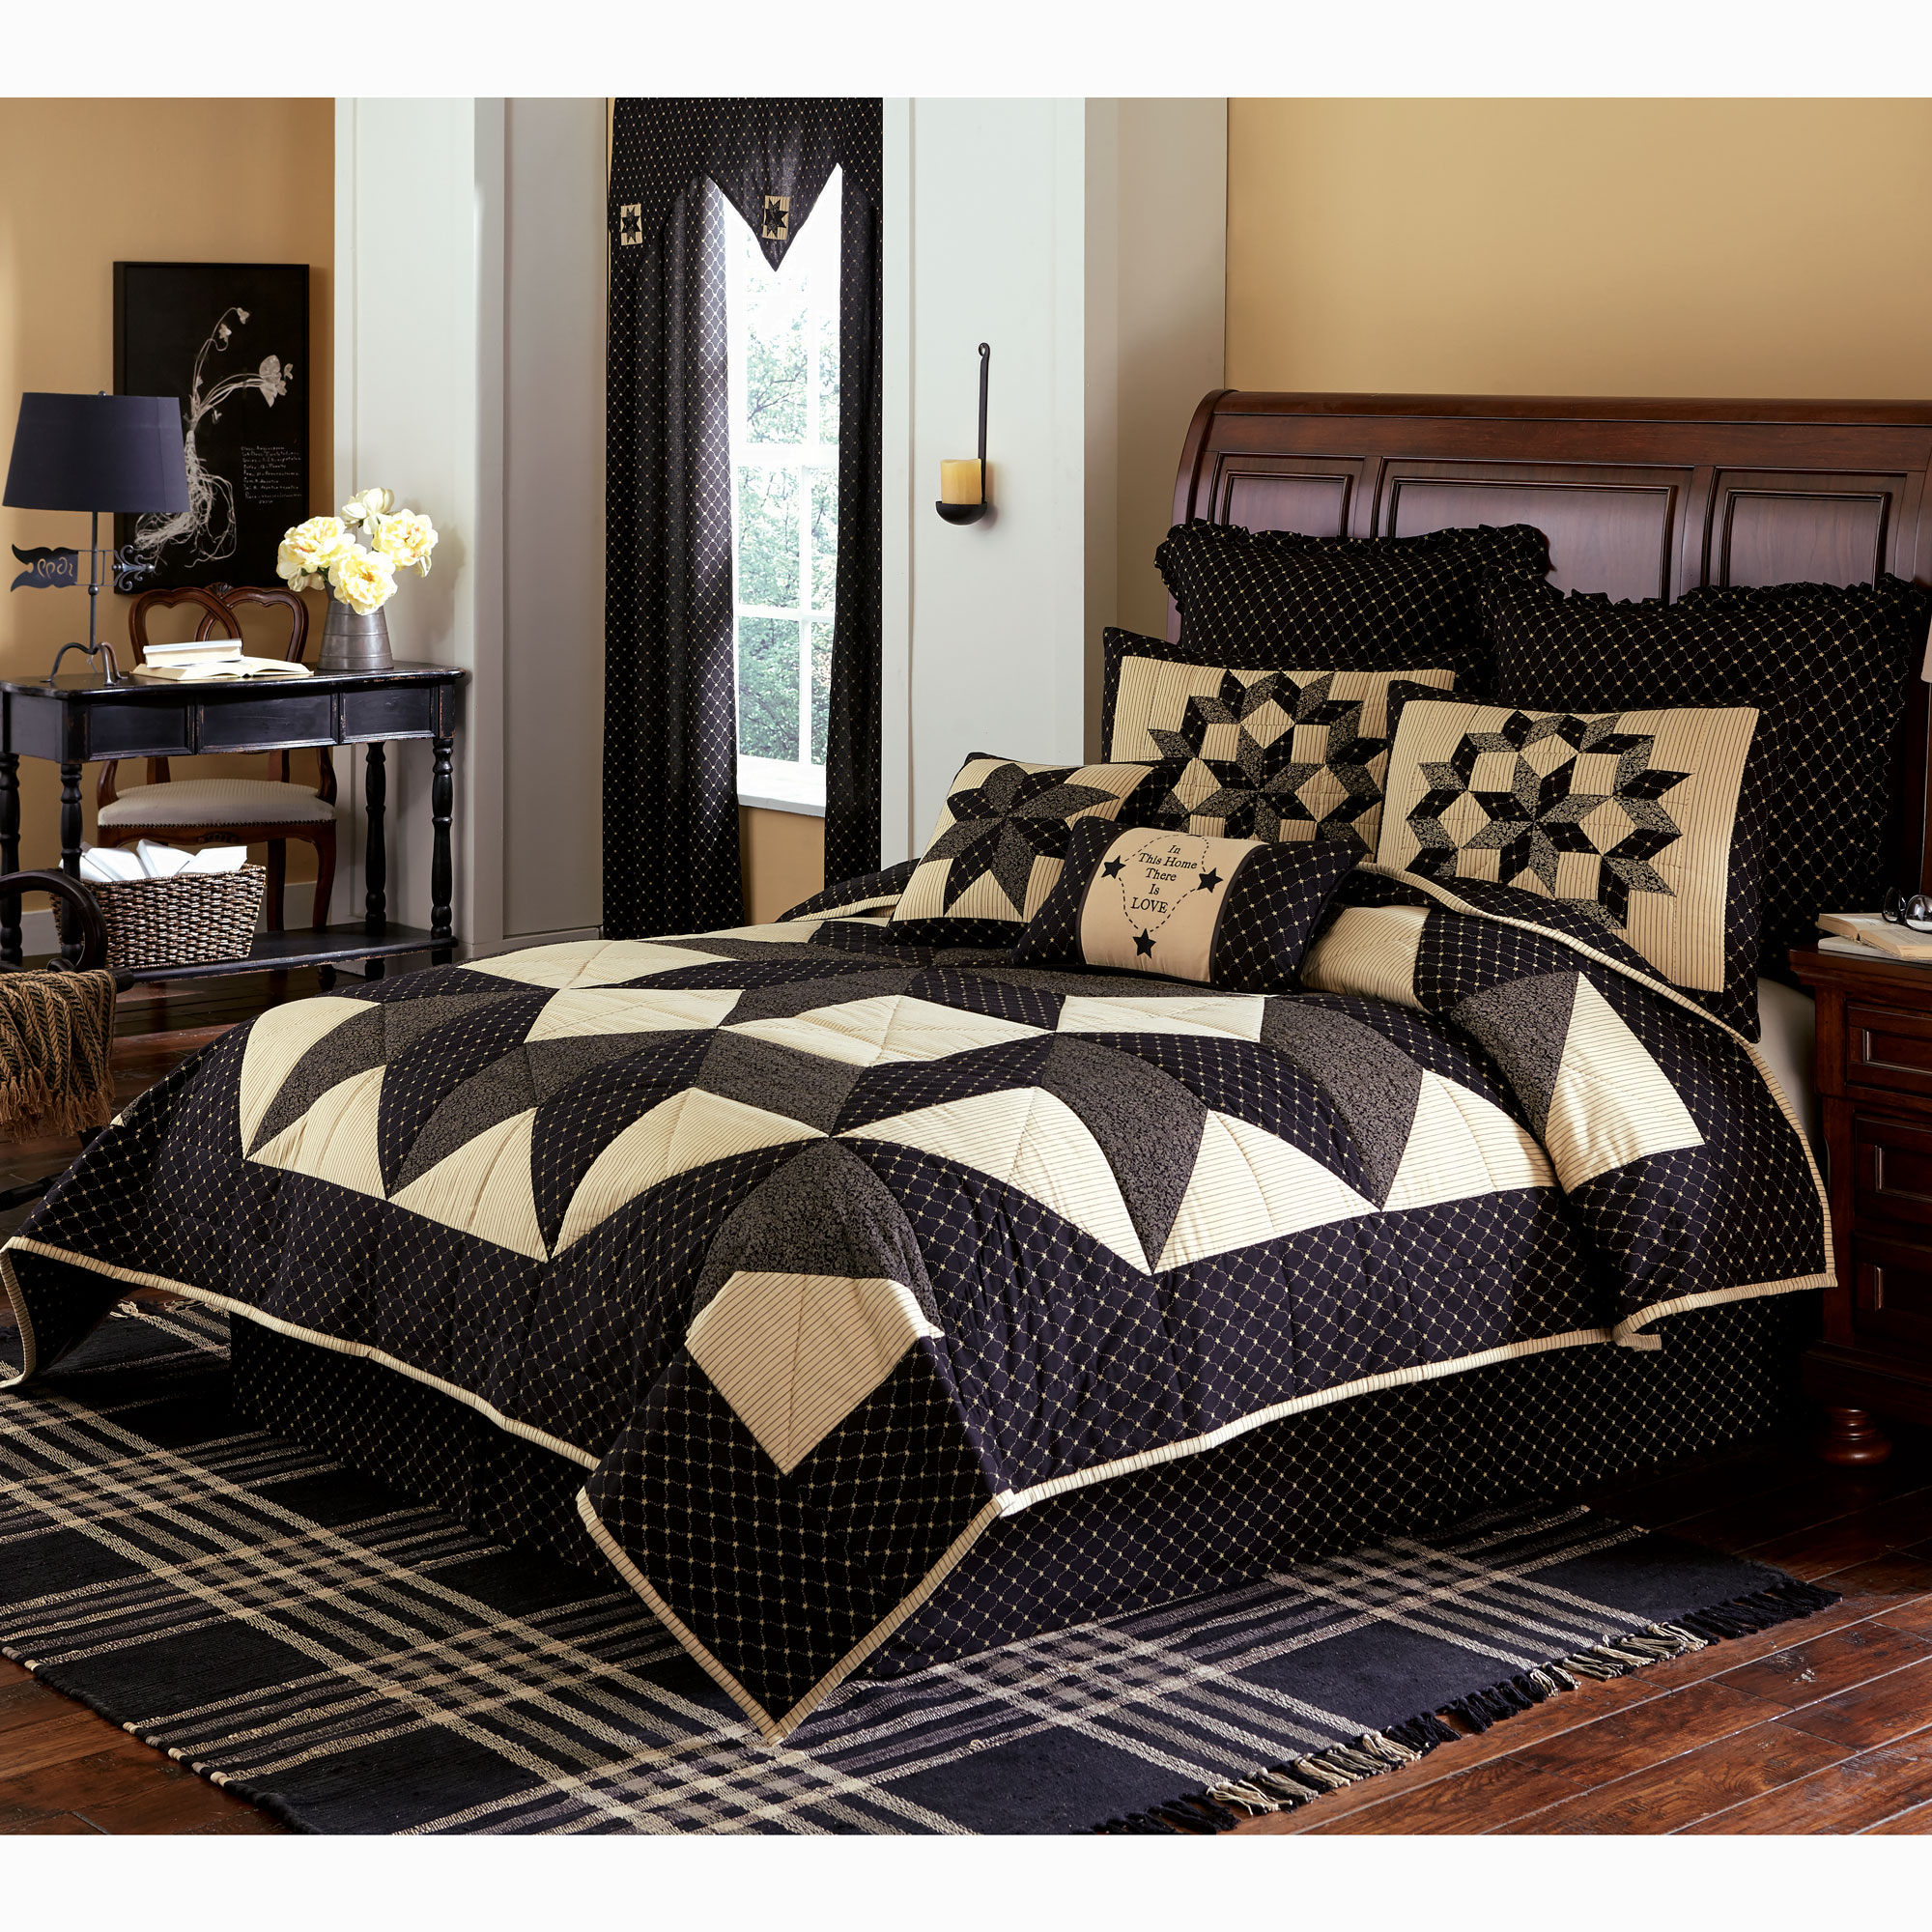 PKD-377-93-Carrington-Luxury-King-Quilt-LRG